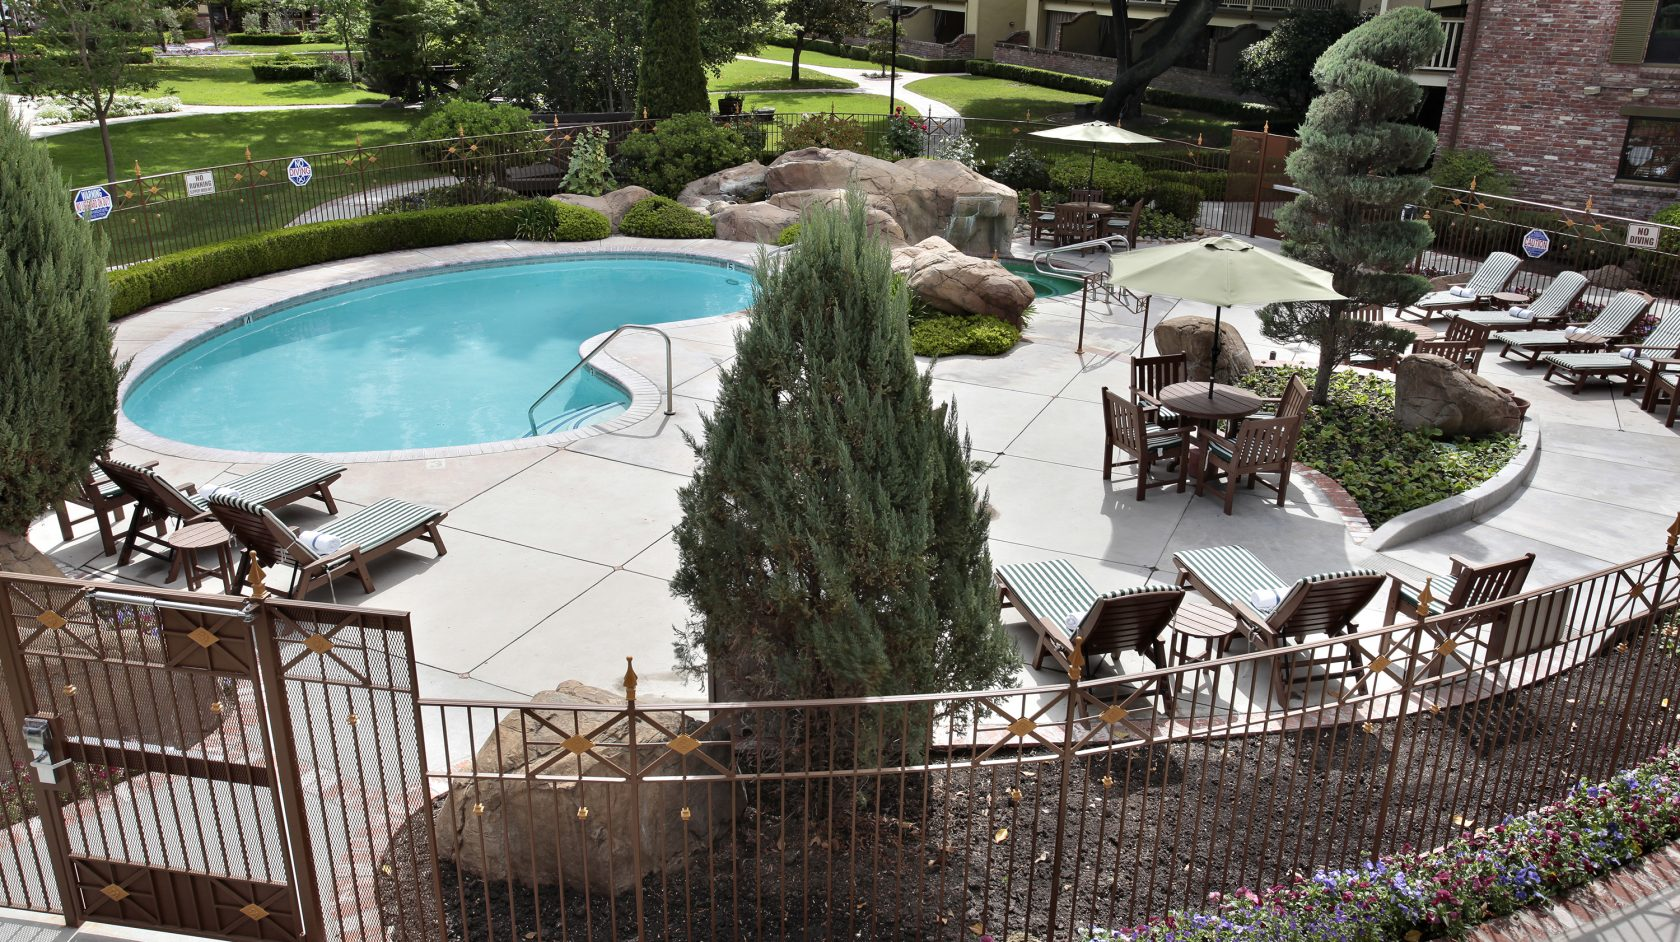 Fisheye View of Paso Robles Inn Pool and Lounge Area 2